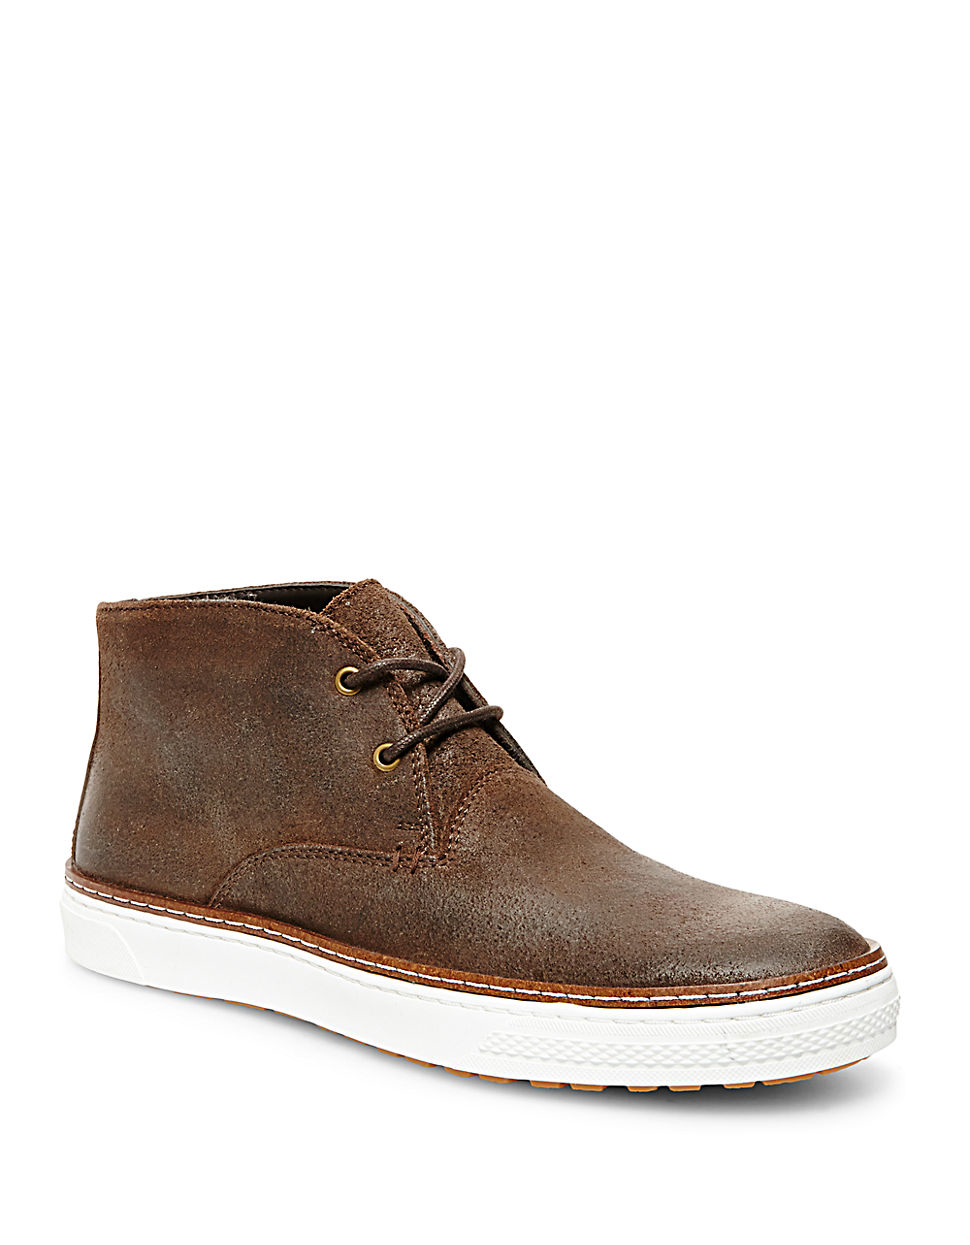 steve madden fedder suede chukka boots in brown for lyst